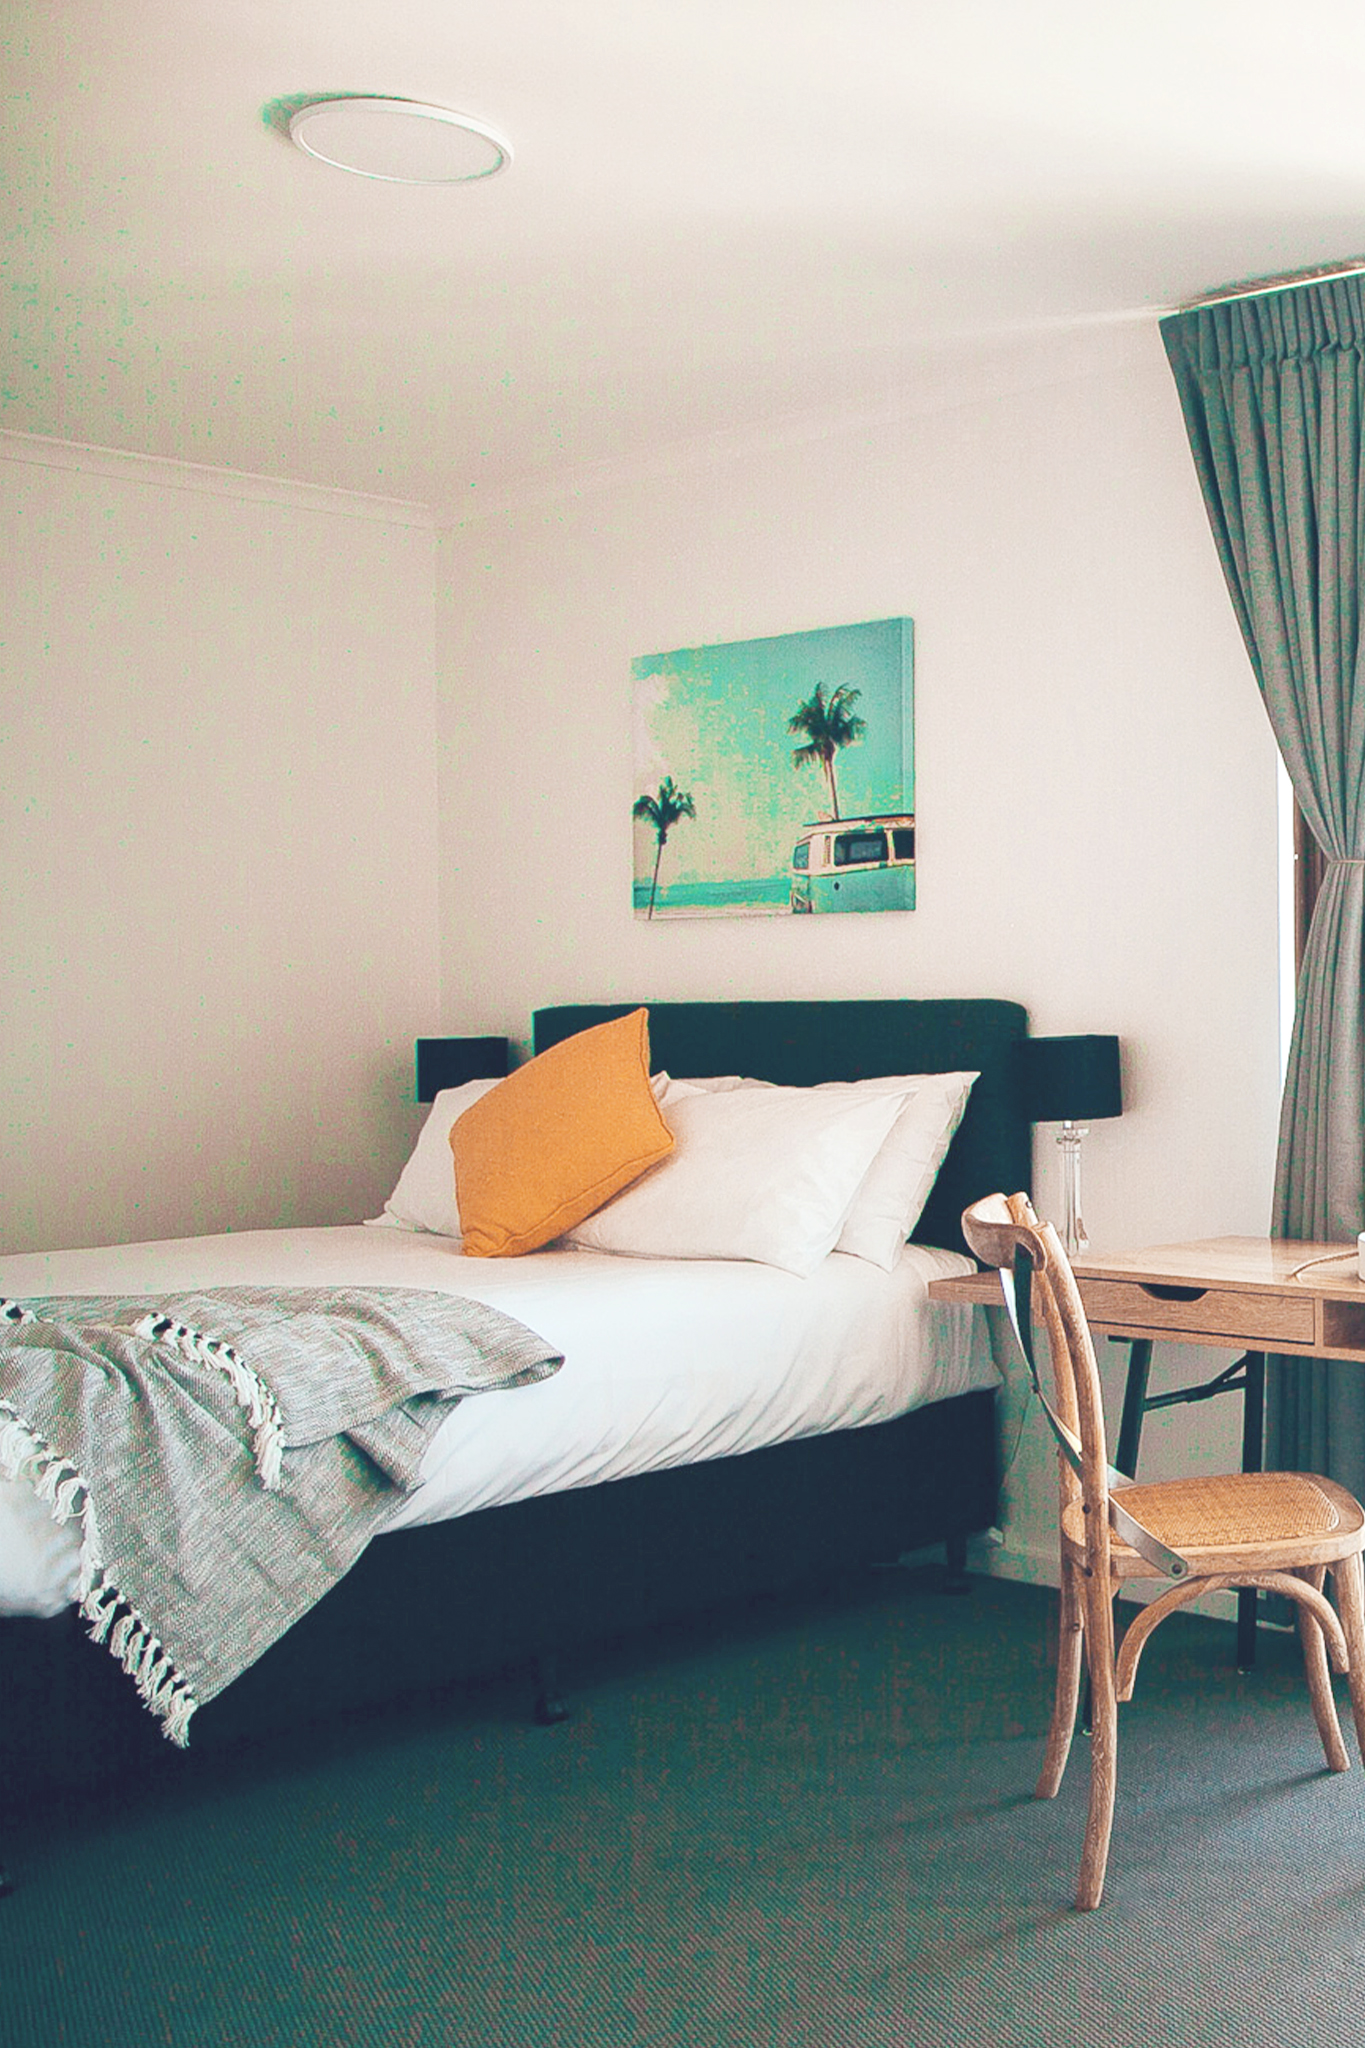 Large comfortable air-conditioned room with private balcony.